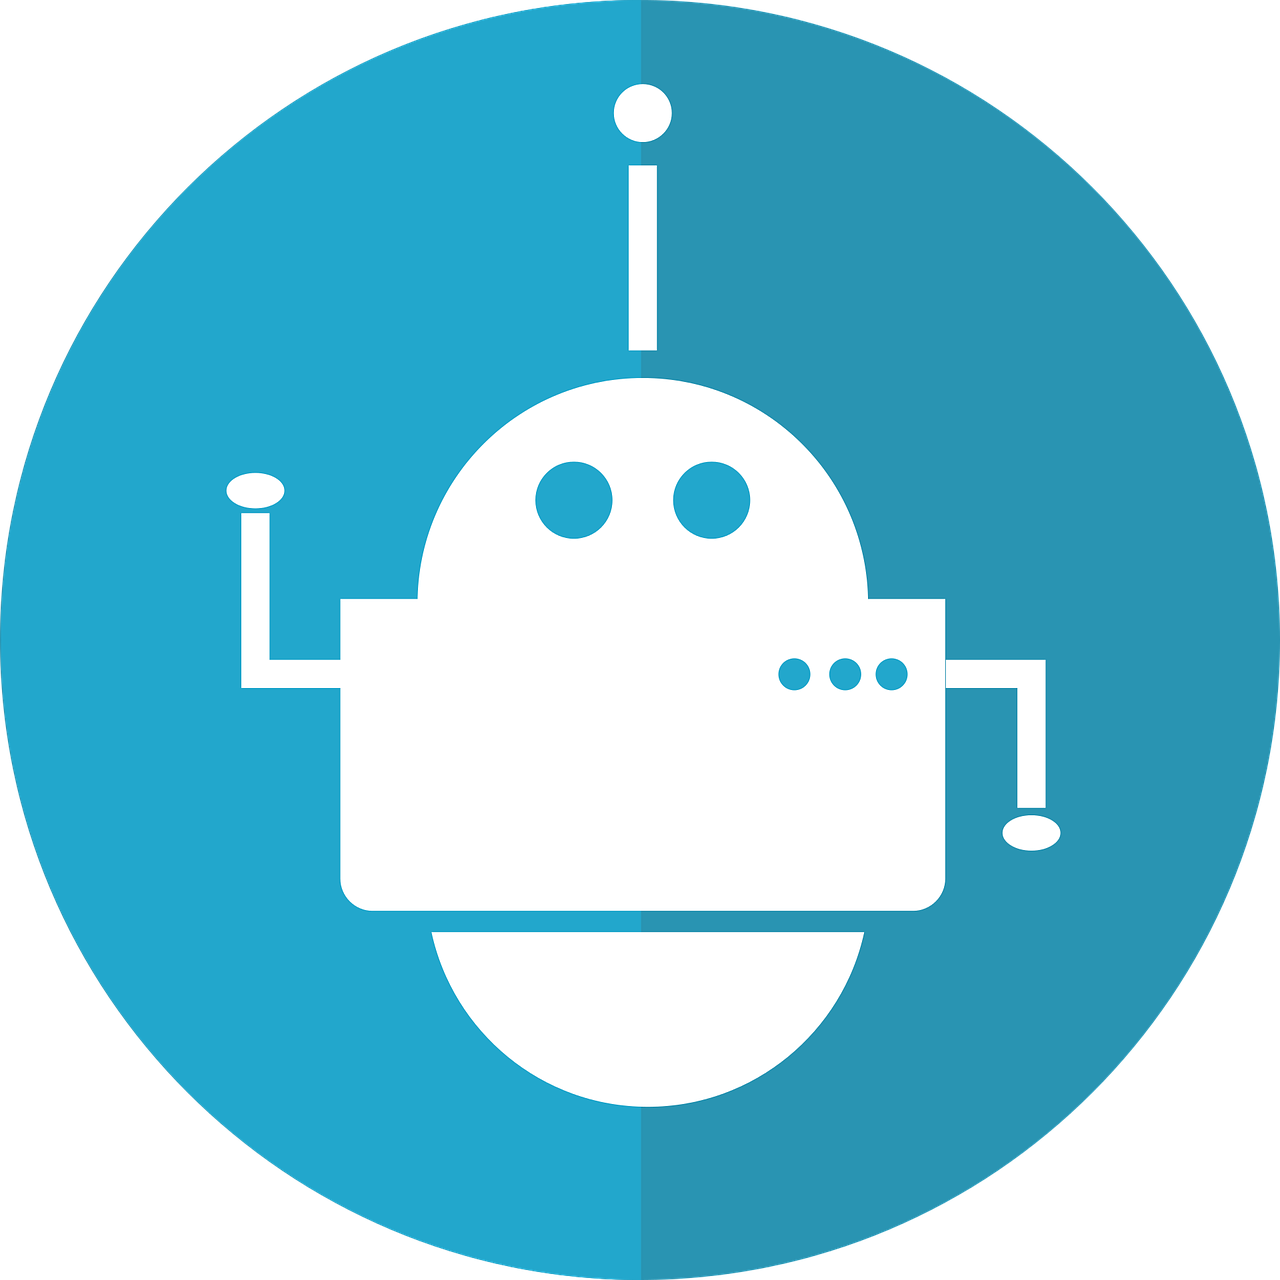 Bot Icon Robot Automated - Free vector graphic on Pixabay